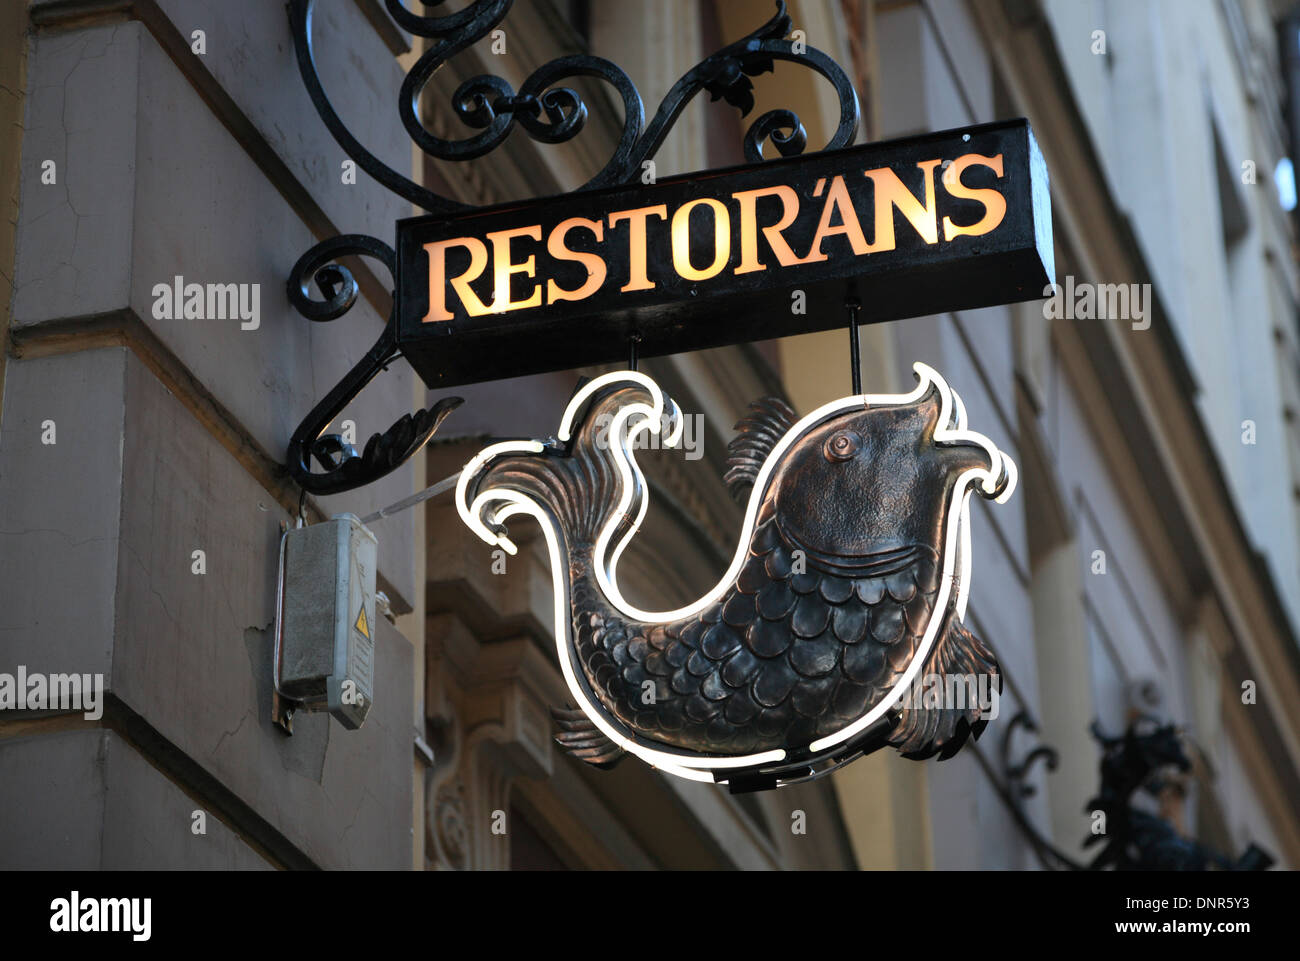 Restaurant sign, Riga, Latvia - Stock Image